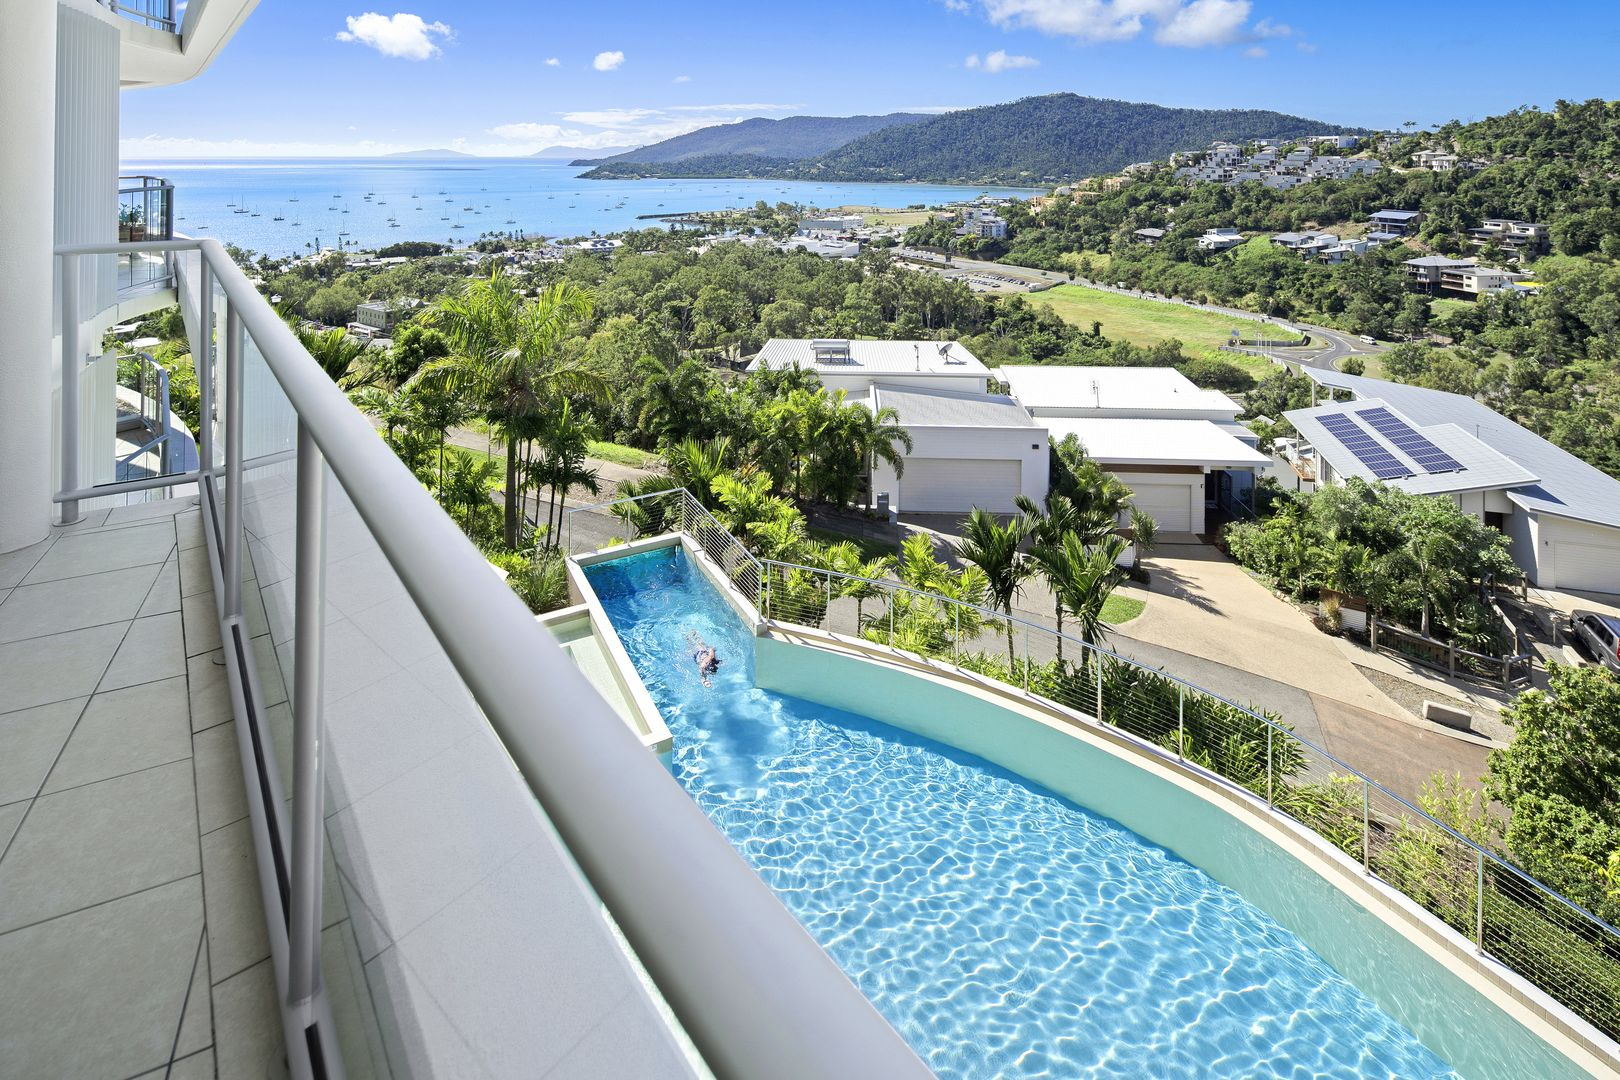 15/18 Seaview Drive, Airlie Beach QLD 4802, Image 0